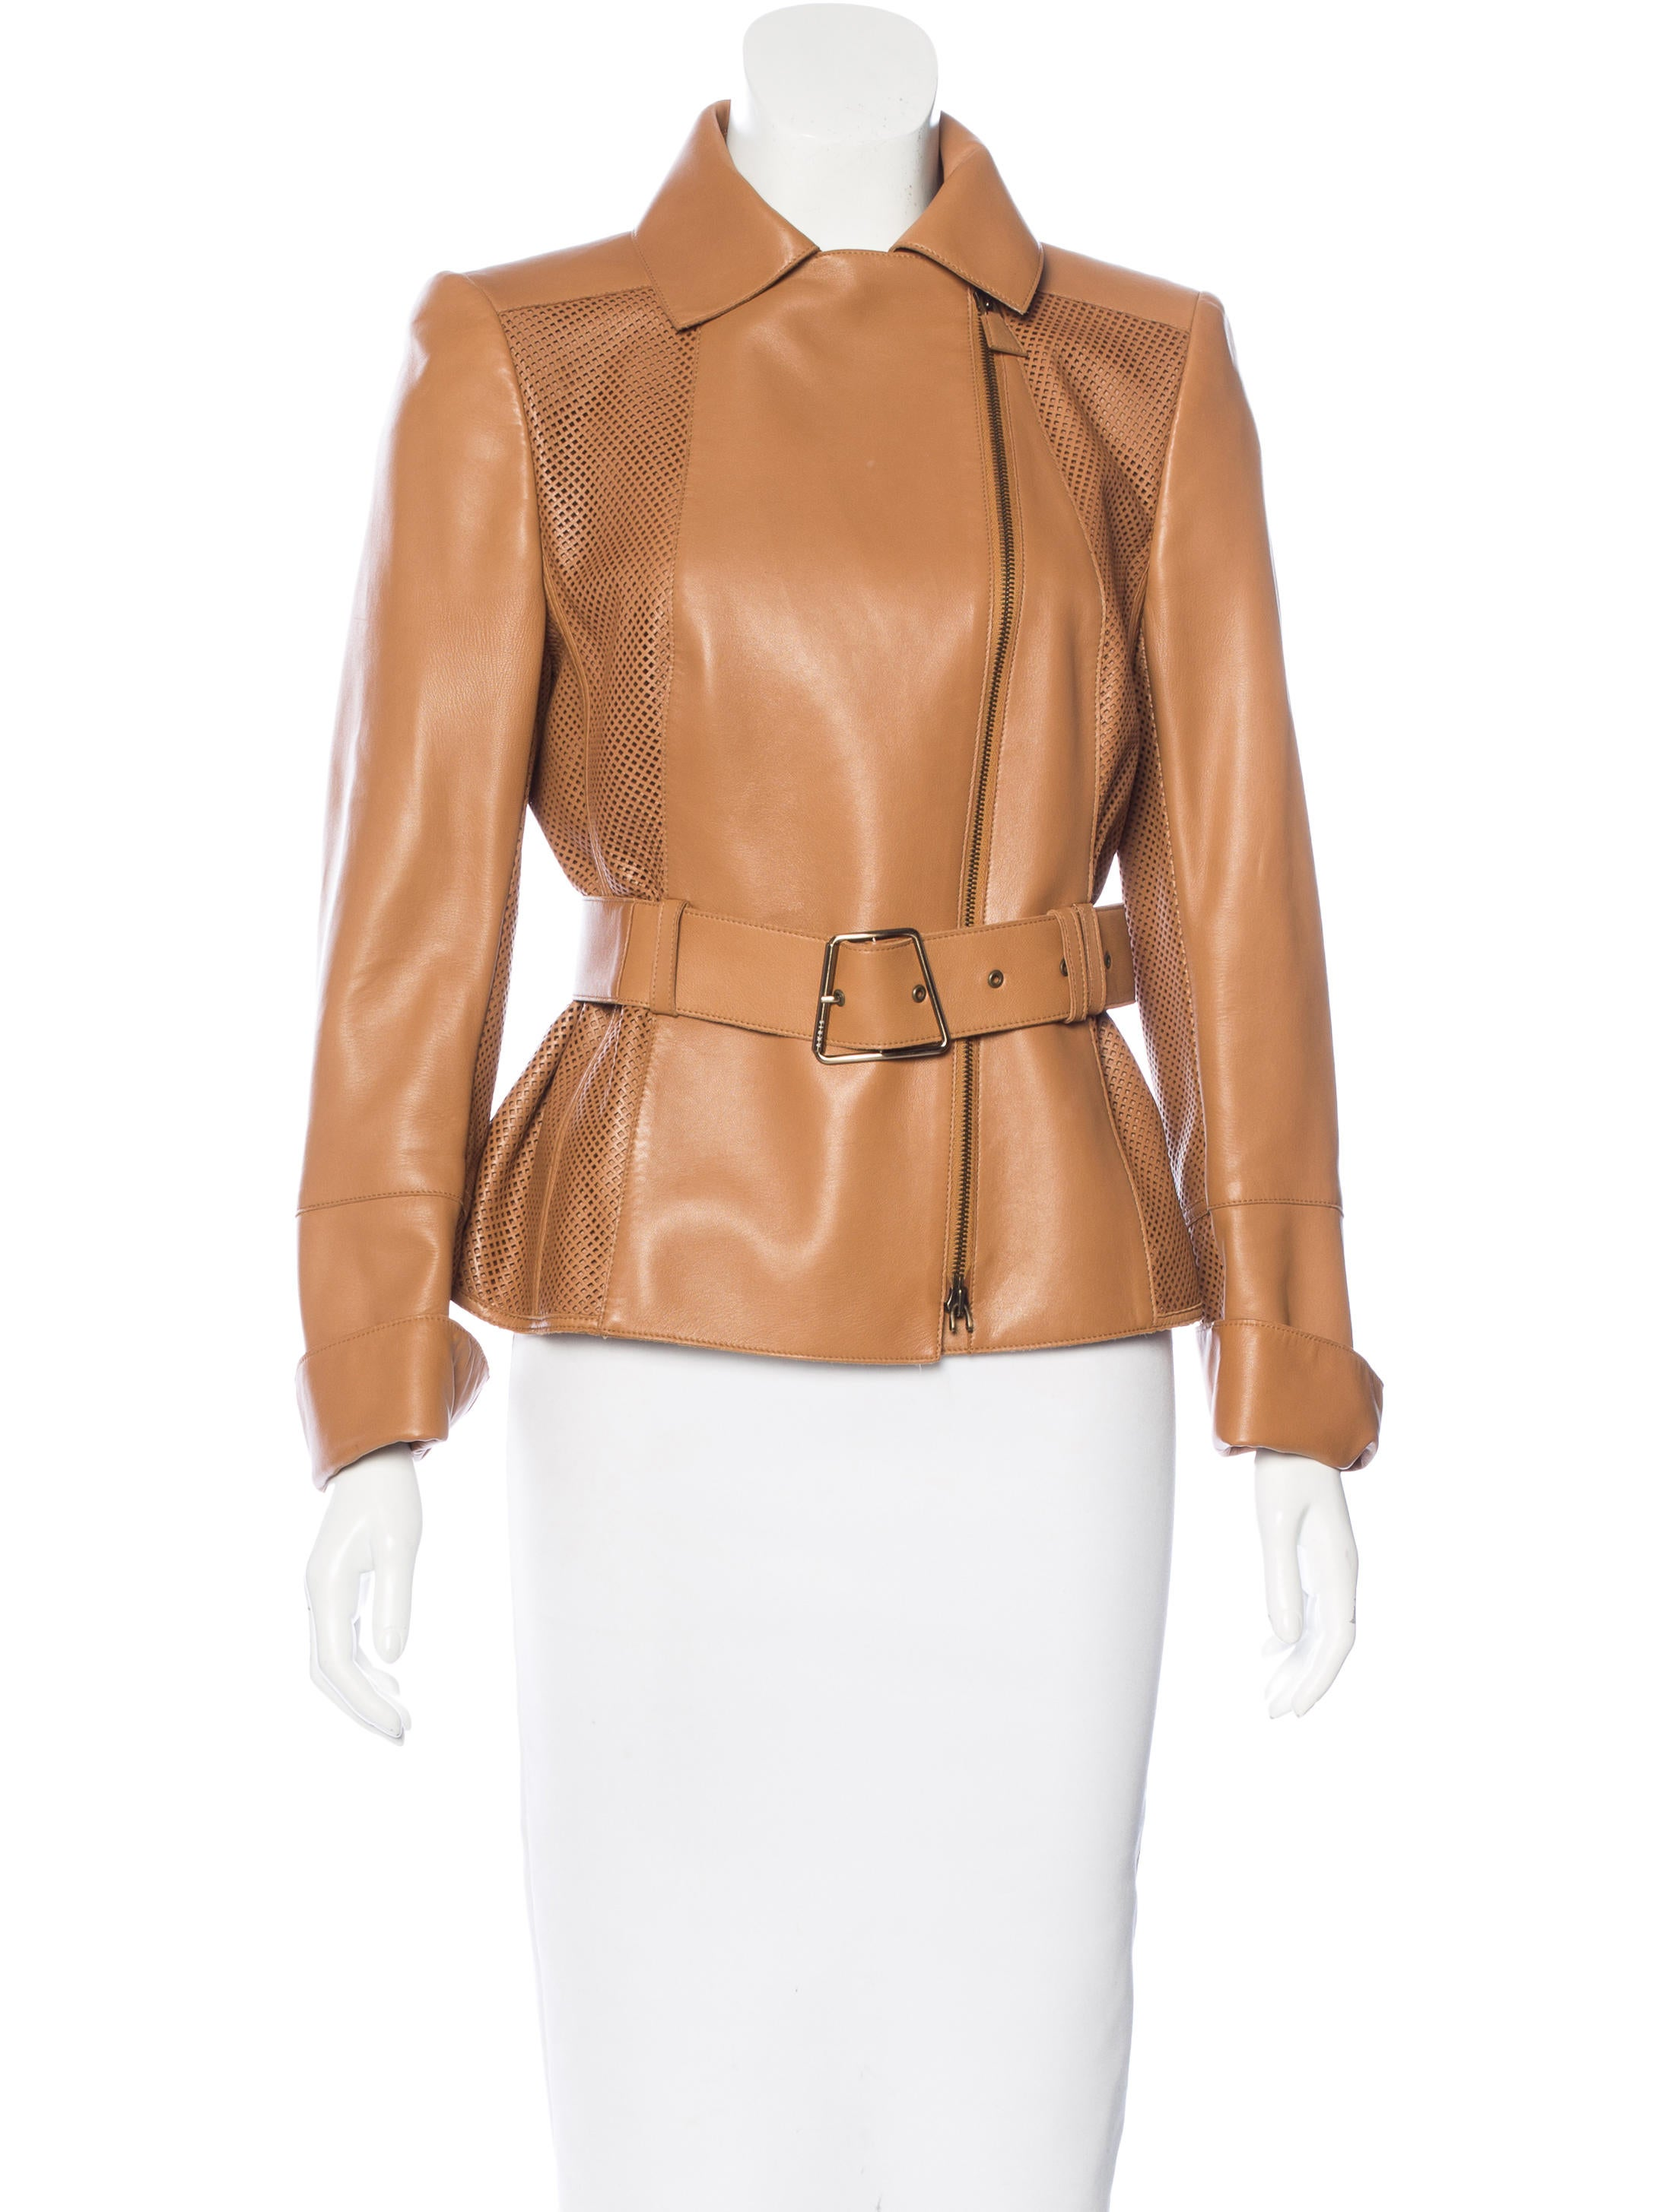 Akris Leather Laser Cut Jacket Clothing Akr29927 The